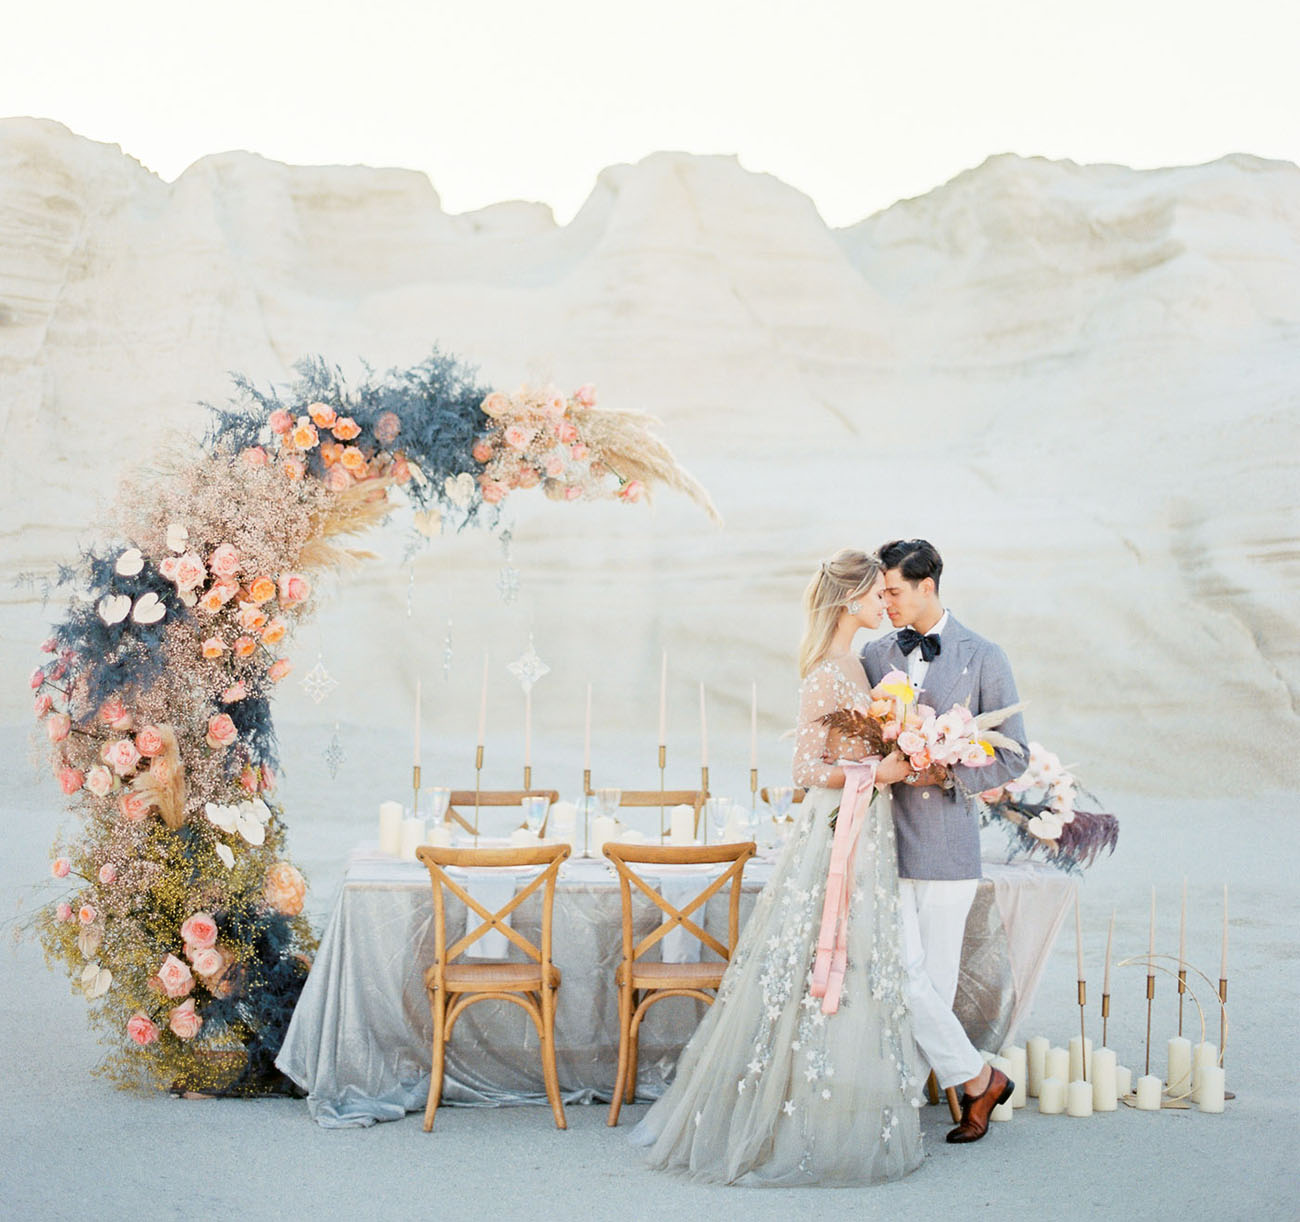 This gorgeous romantic celestial wedding shoot is done in sweet pastel tones and looks out of this world